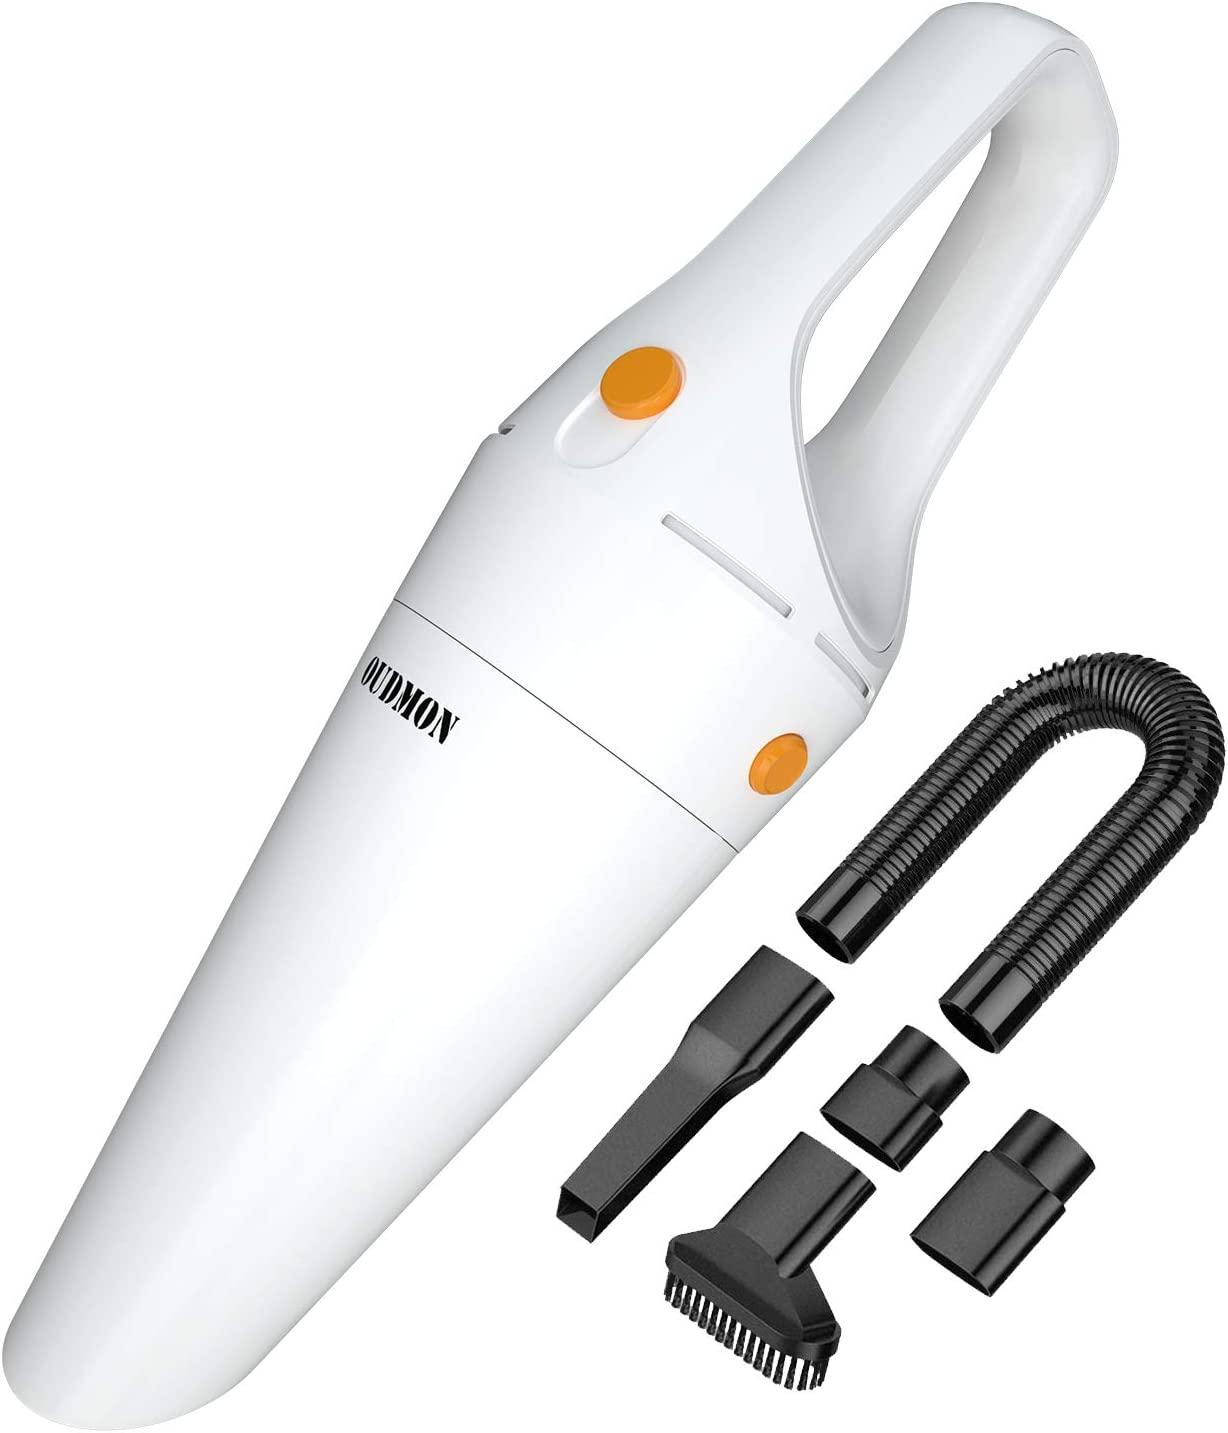 Handheld Vacuum Cordless, OUDMON Rechargeable Portable Vacuum Hand Cleaner, 120W 6000PA High Power Suction Wet&Dry Hand Held Vac for Home, Pet Hair, Dust, Car Cleaning White